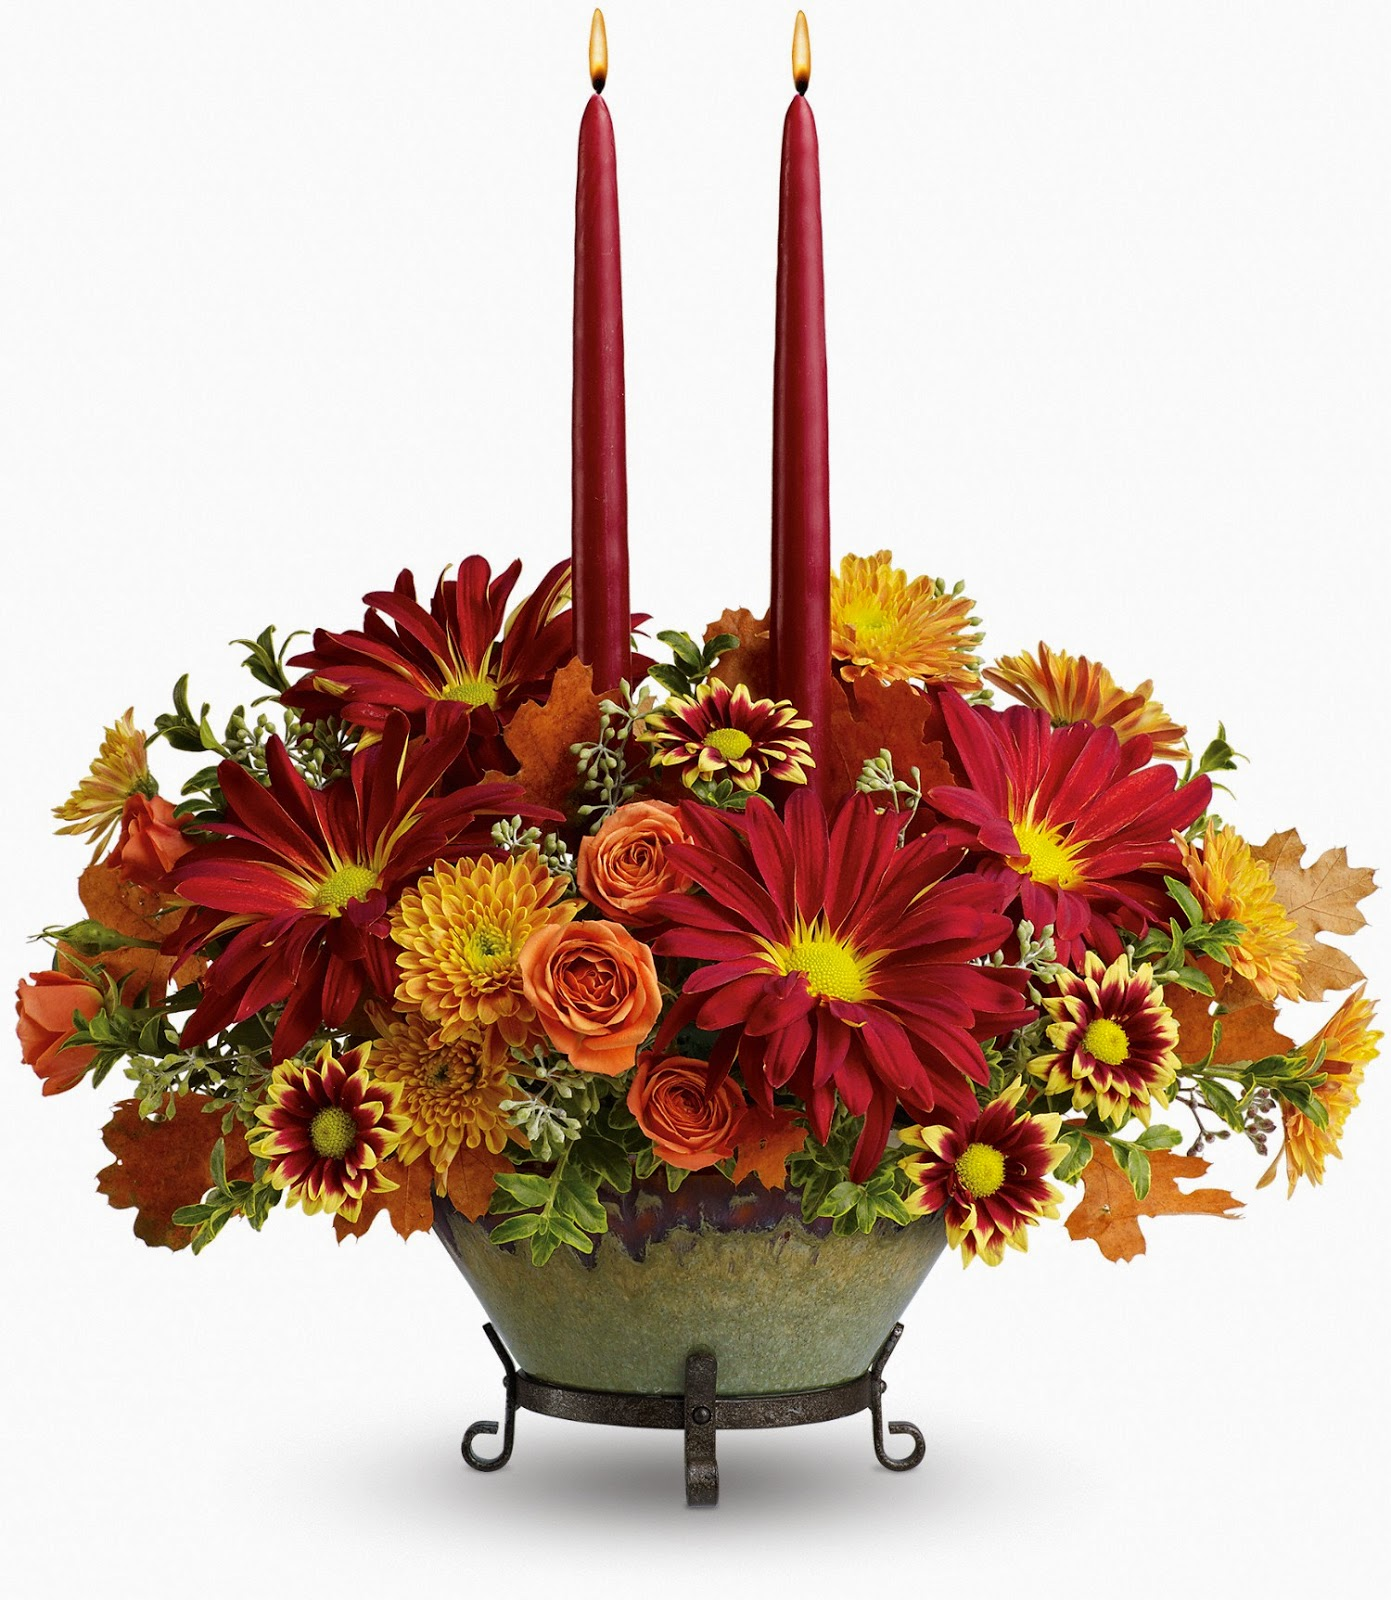 http://www.larose.com/the-florist/send-holiday-flowers/order-thanksgiving-flowers/send-the-tuscan-autumn-centerpiece/